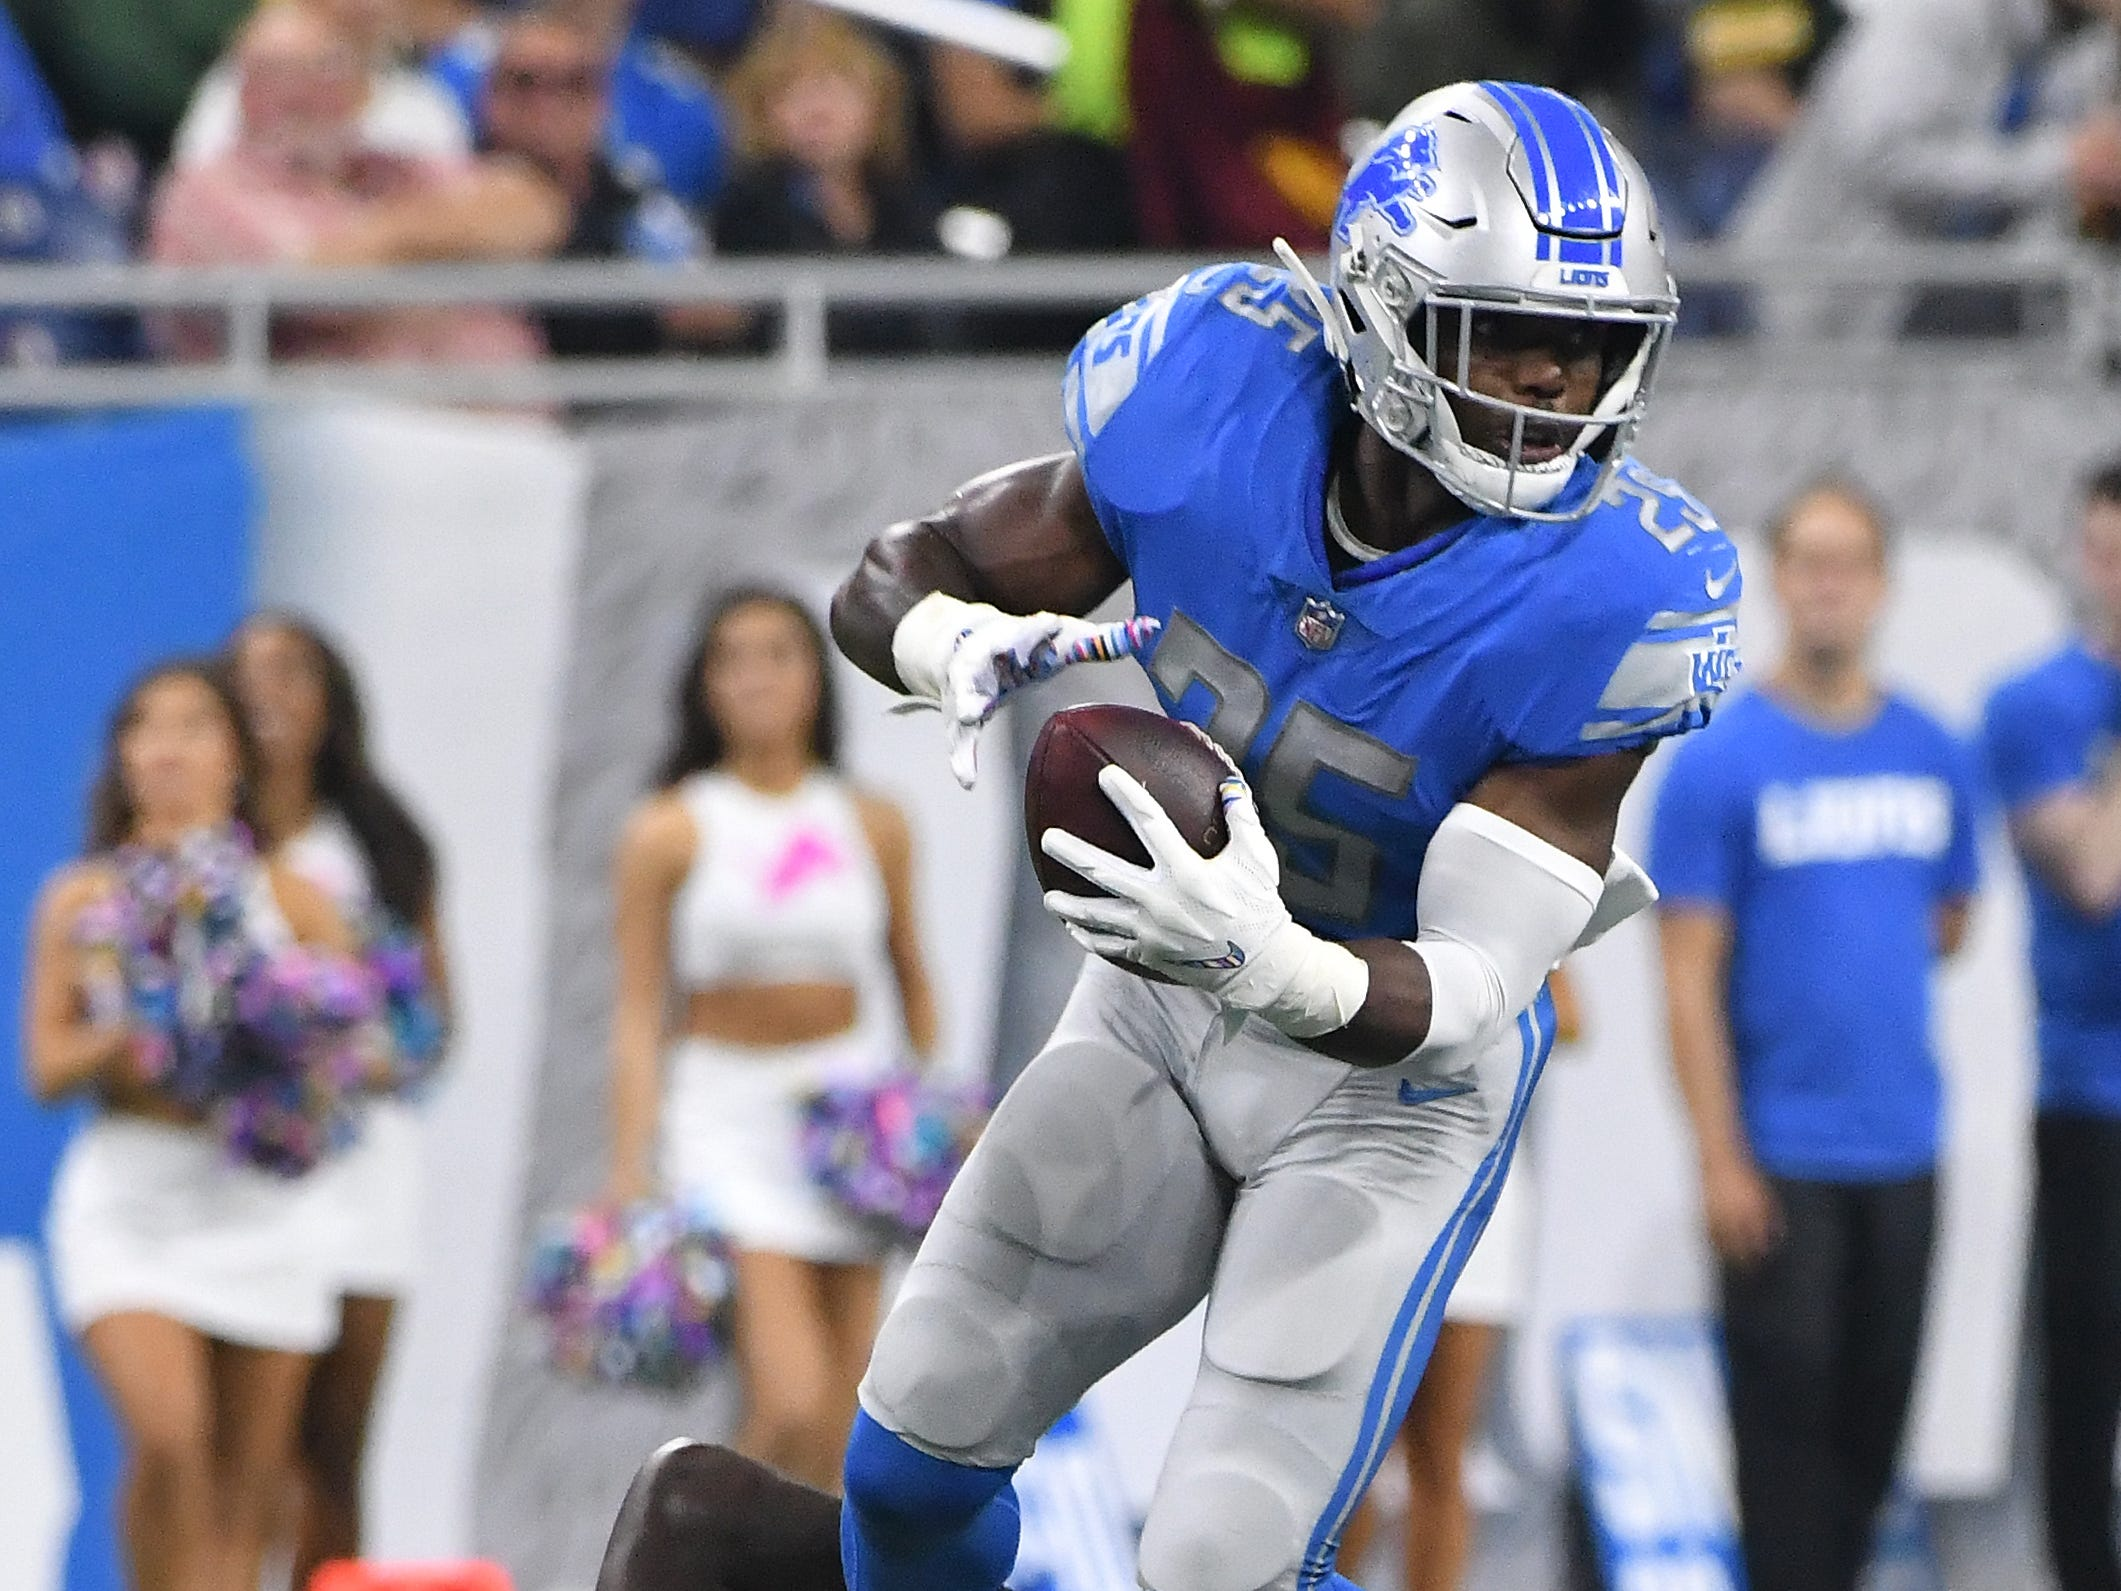 RB Theo Riddick: Riddick has been banged up this year, recently missing two games with a knee injury, but when he's been active, he's averaged five receptions per game. The problem is he hasn't been the dynamic yards-after-catch option he's been in the past, showing decreased elusiveness, while also dropping an uncharacteristic number of passes. One area he continues to provide value is as a pass protector. He remains the Lions' best option in that department. Grade: C+